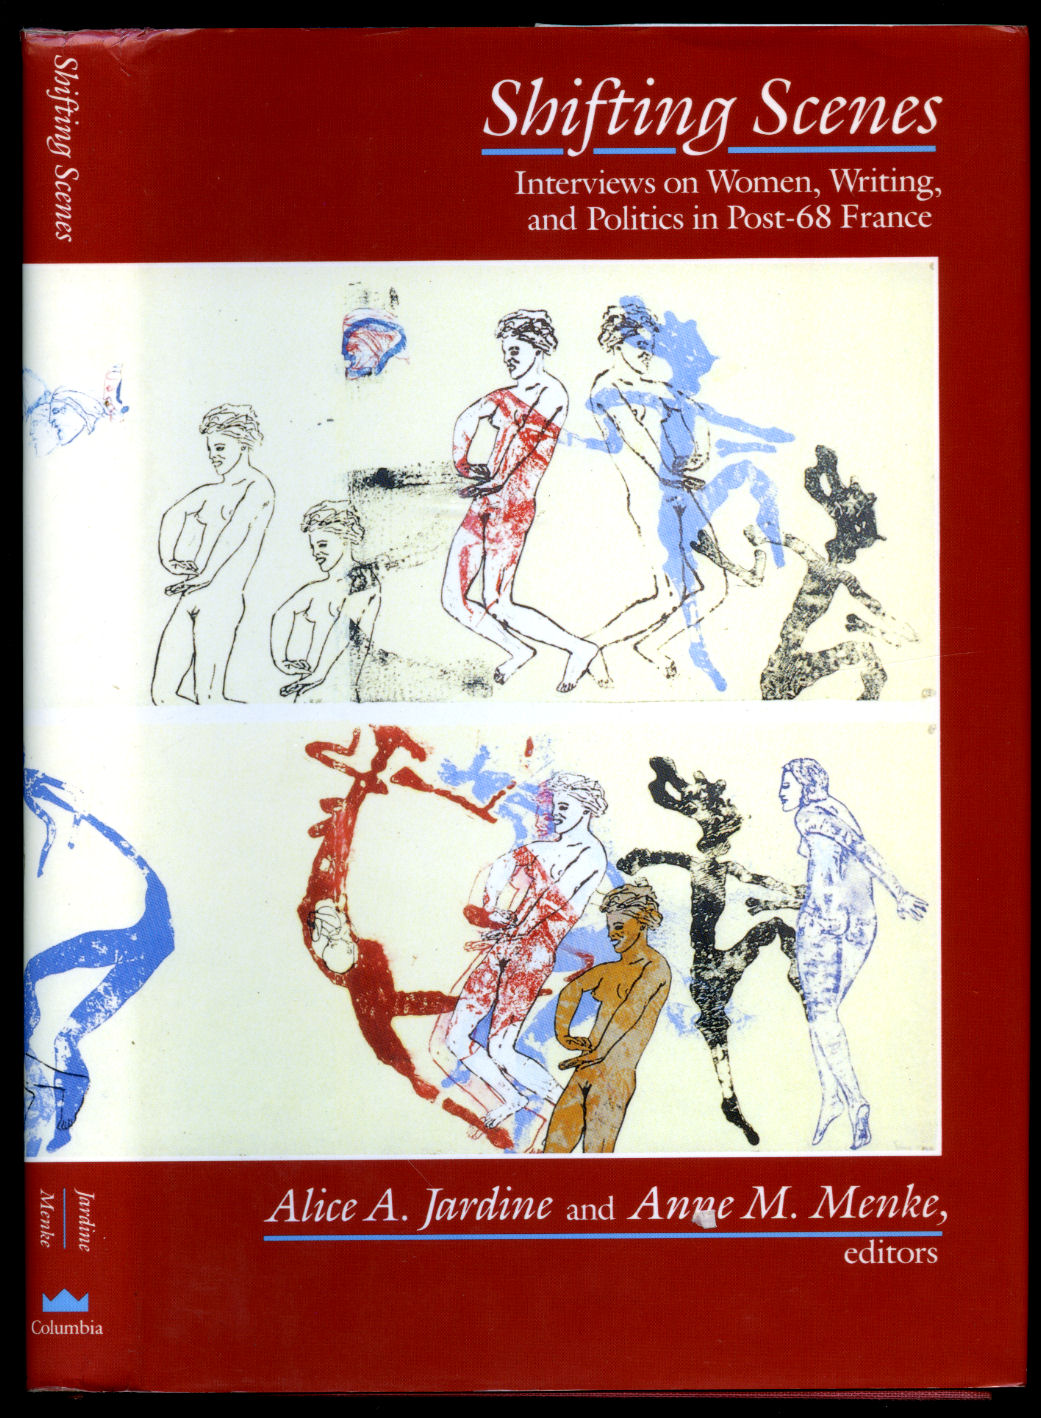 JARDINE, ALICE A. AND ANNE M. MENKE [EDITED BY] - Shifting Scenes; Interviews on Women, Writing and Politics in Post-68 France